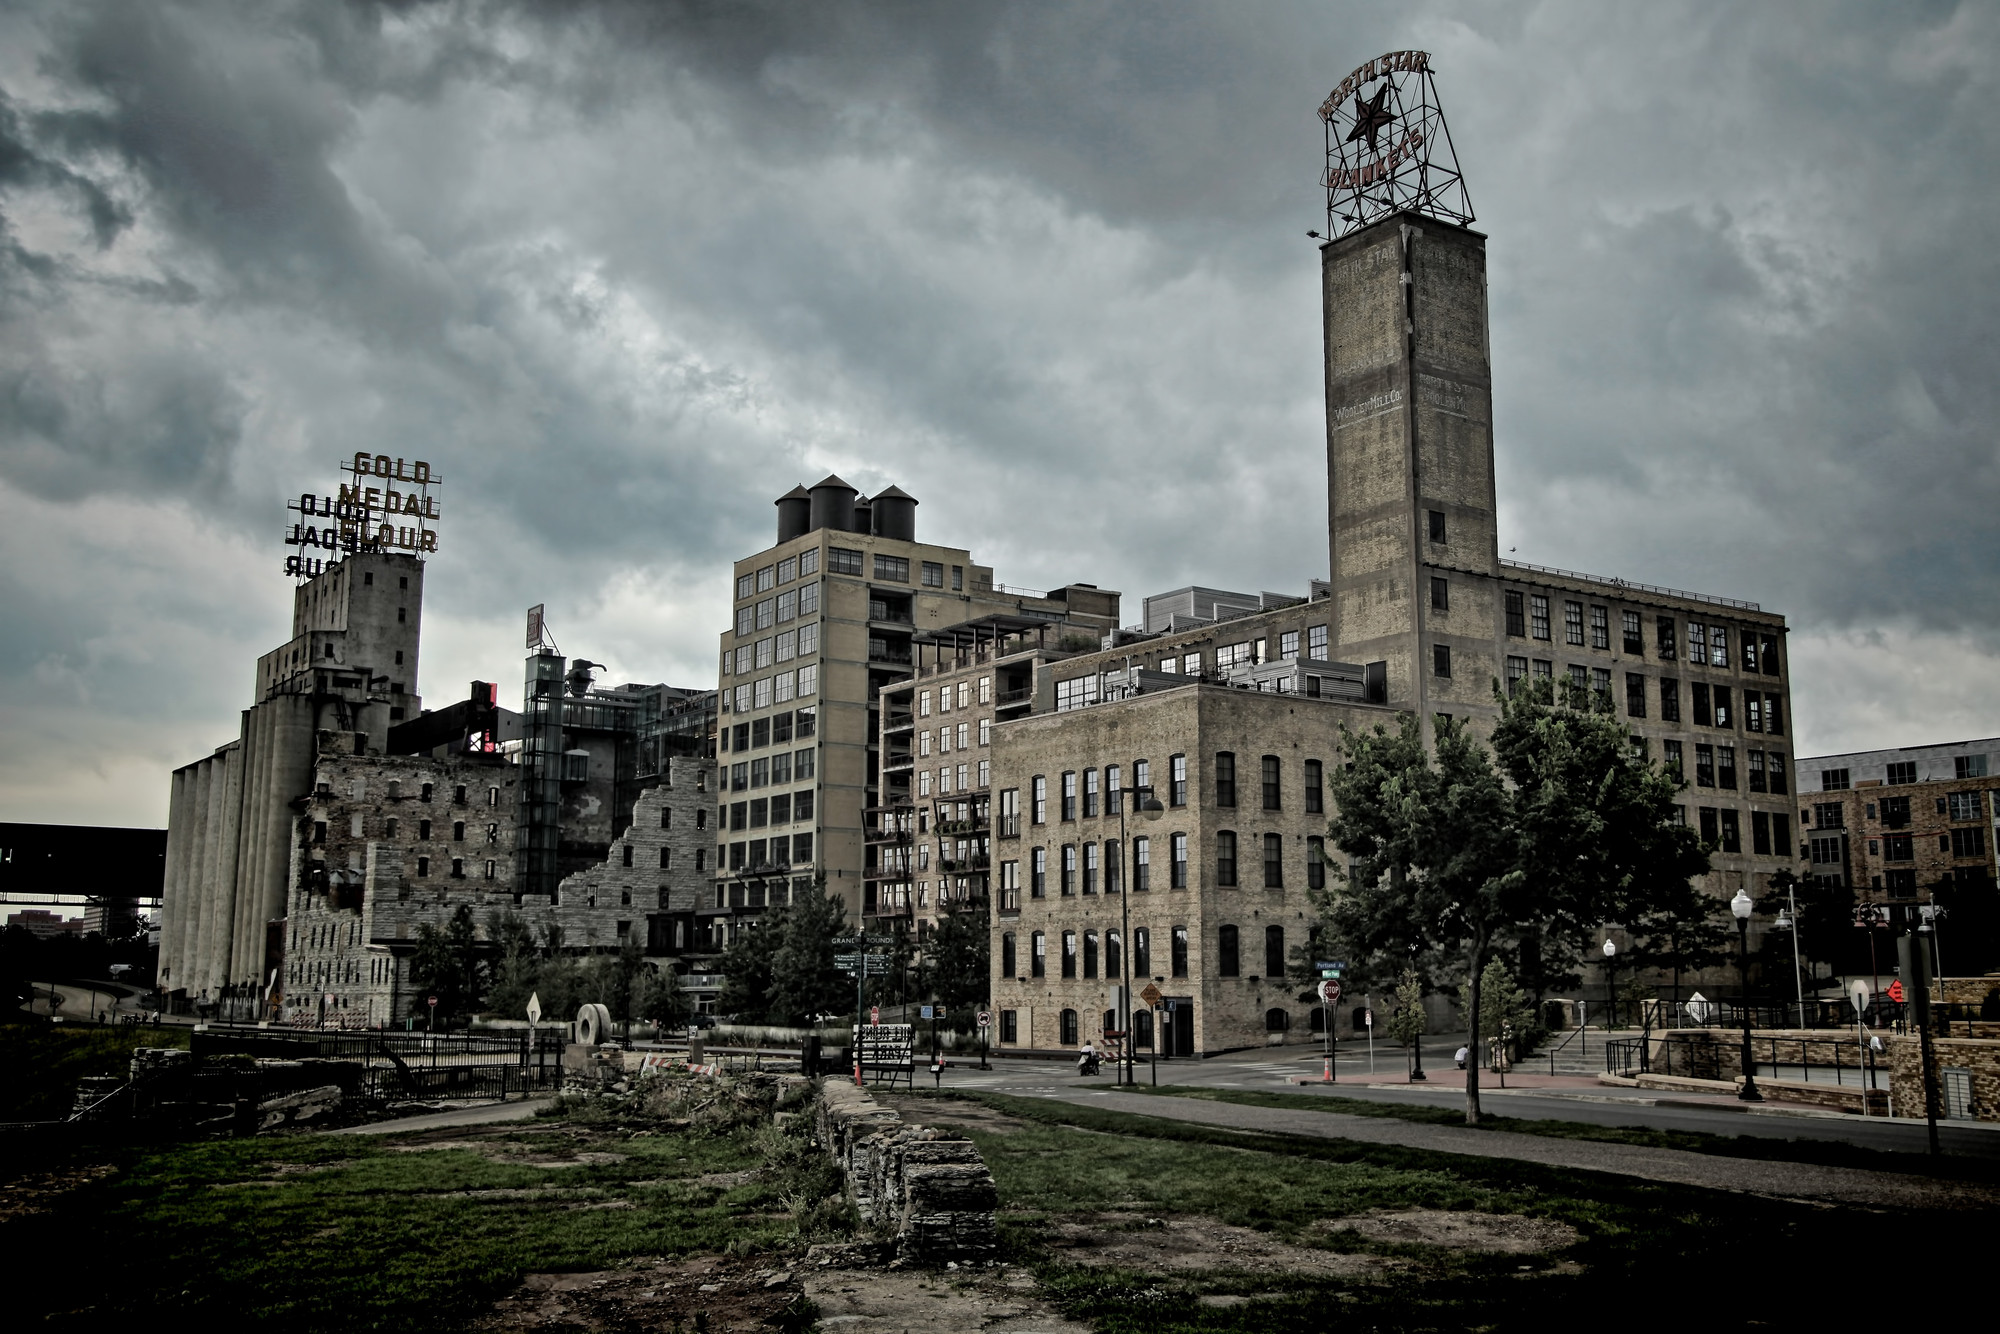 Historic mill city ruins in downtown Minneapolis. Image Courtesy of Flickr CC License / Joey Lax-Salinas